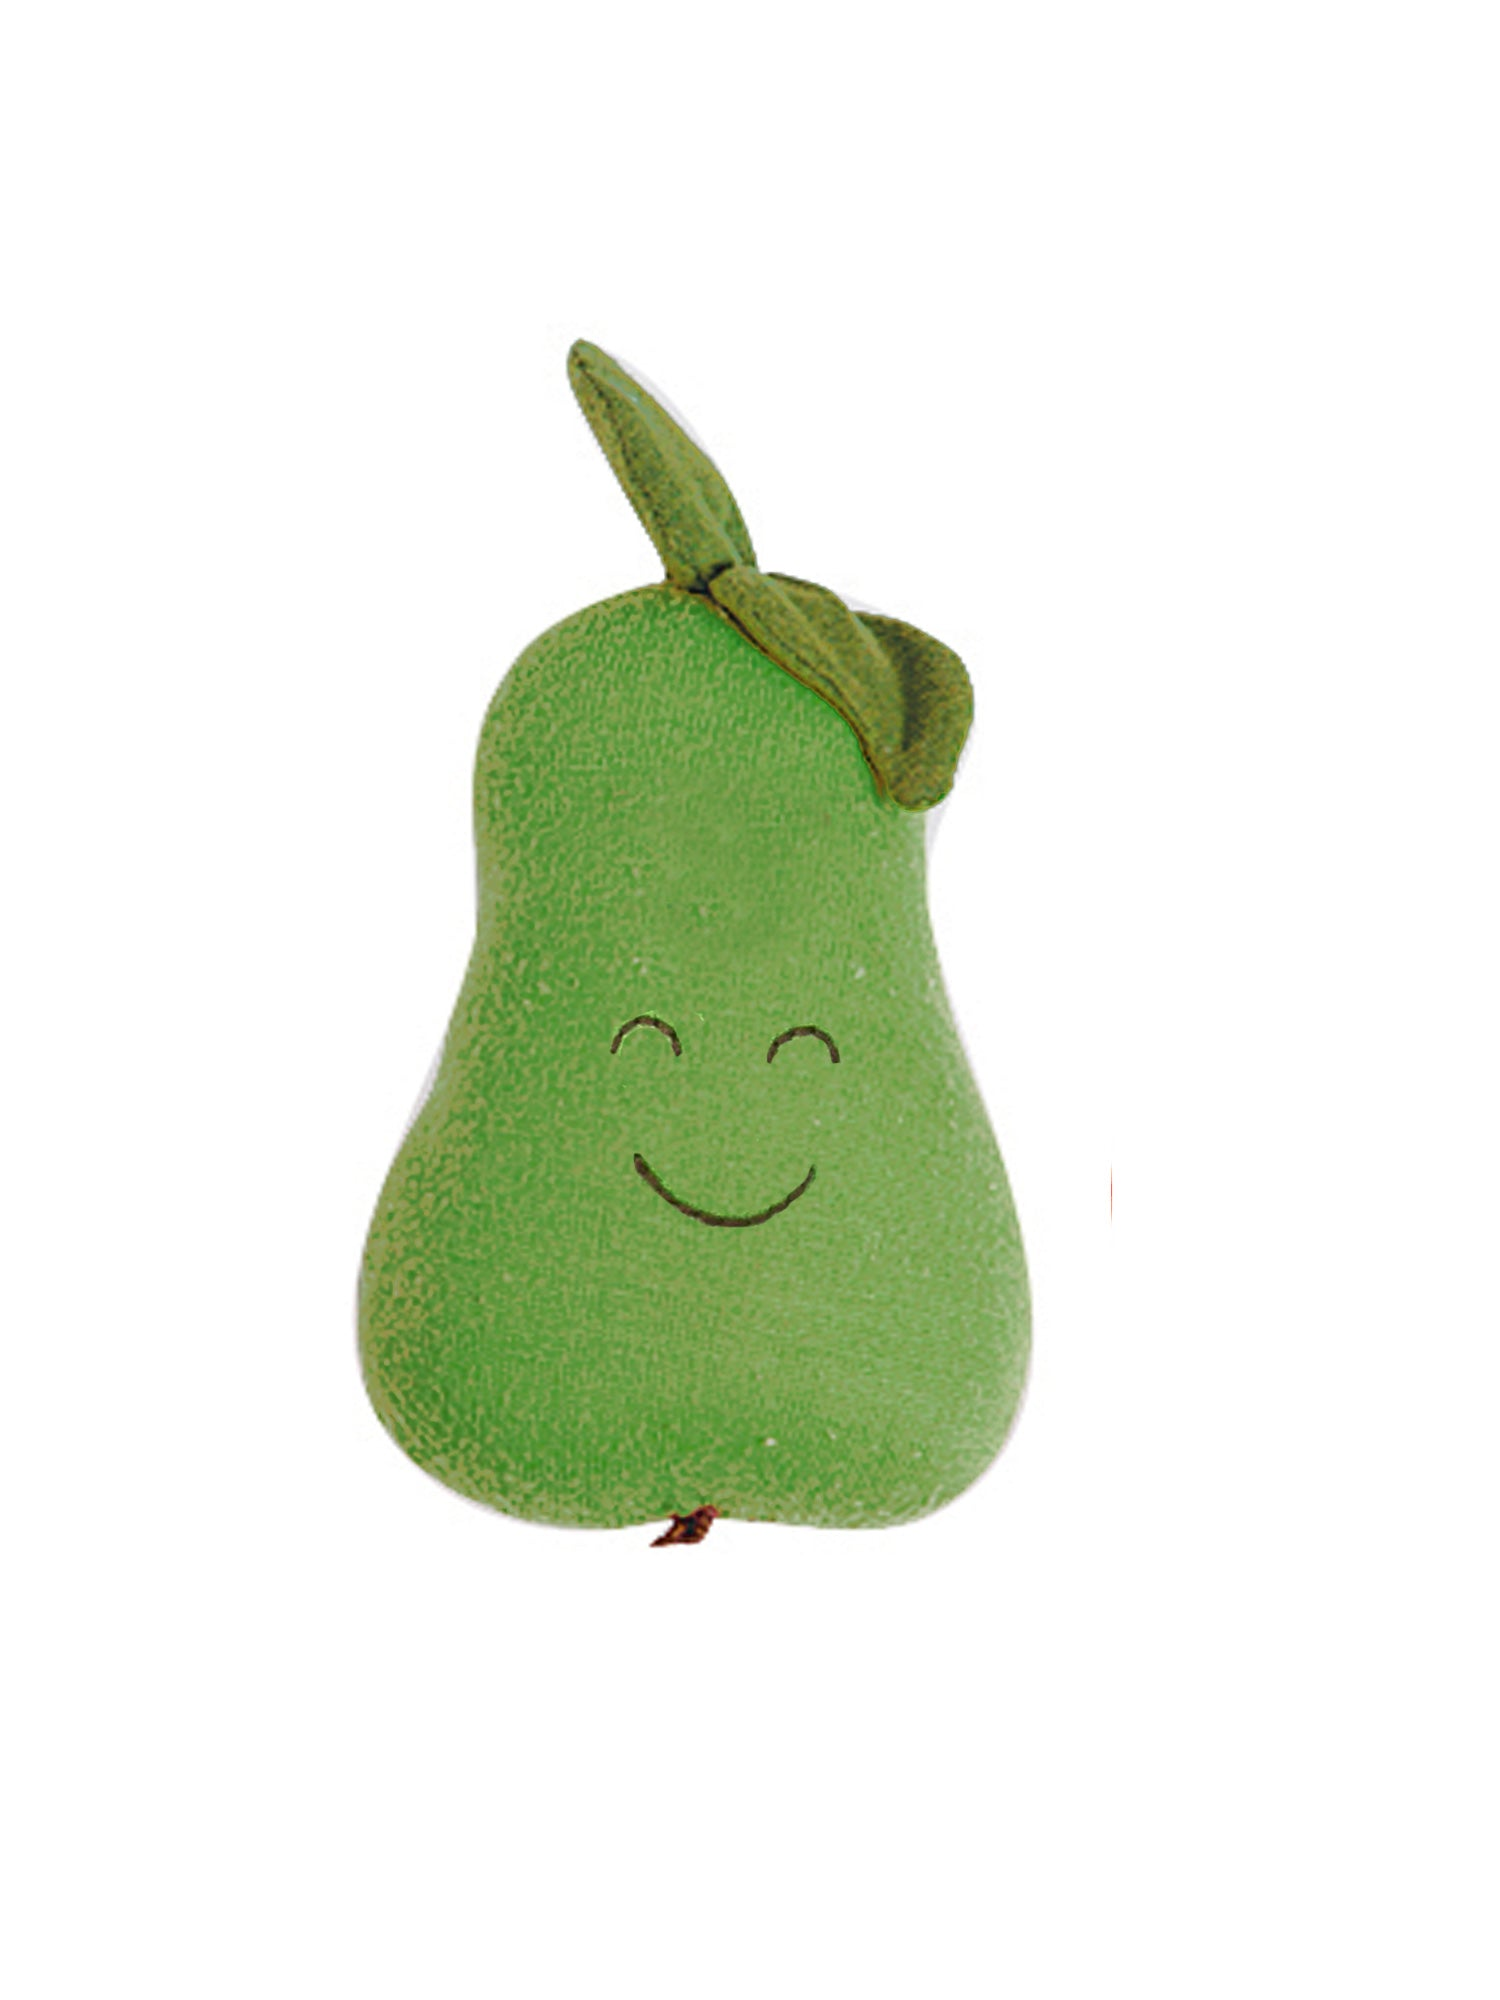 organic-cotton-pear-fruit-veggie-stuffed-toy